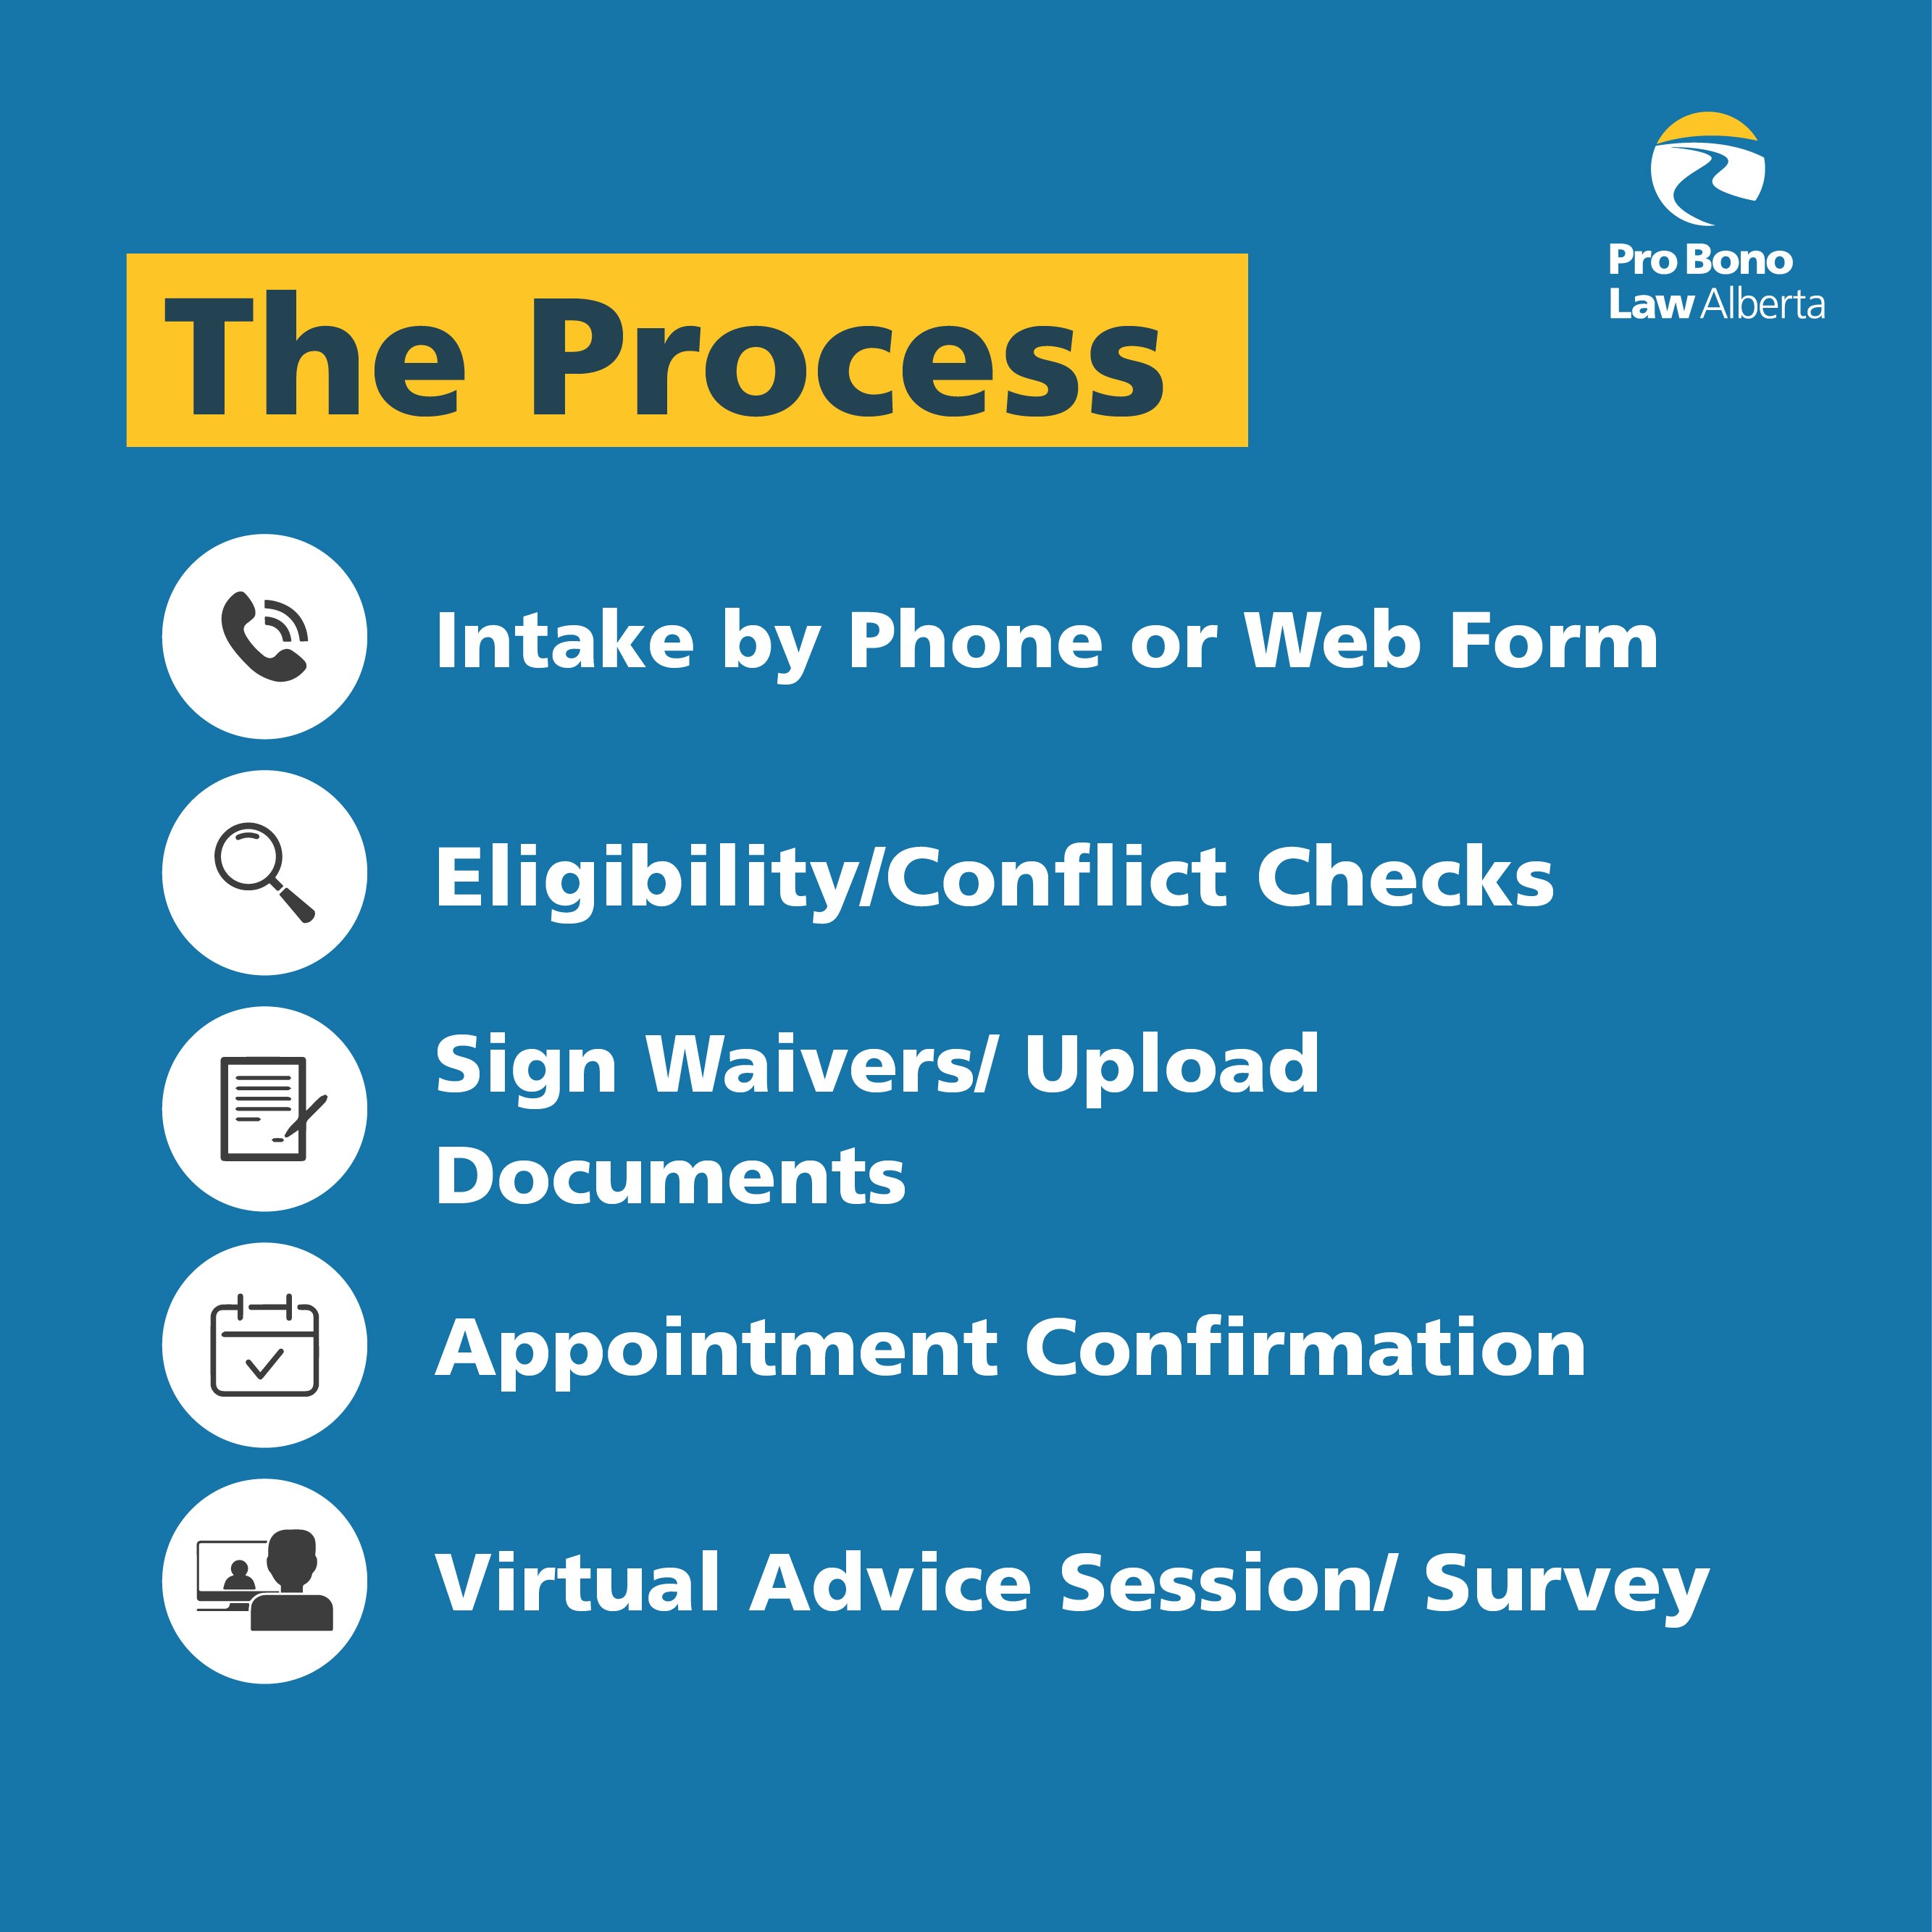 Poster for Court-based Programs Process: intake by phone or webform, conflict check, sign waivers/forms, appointment confirmation, virtual advice session